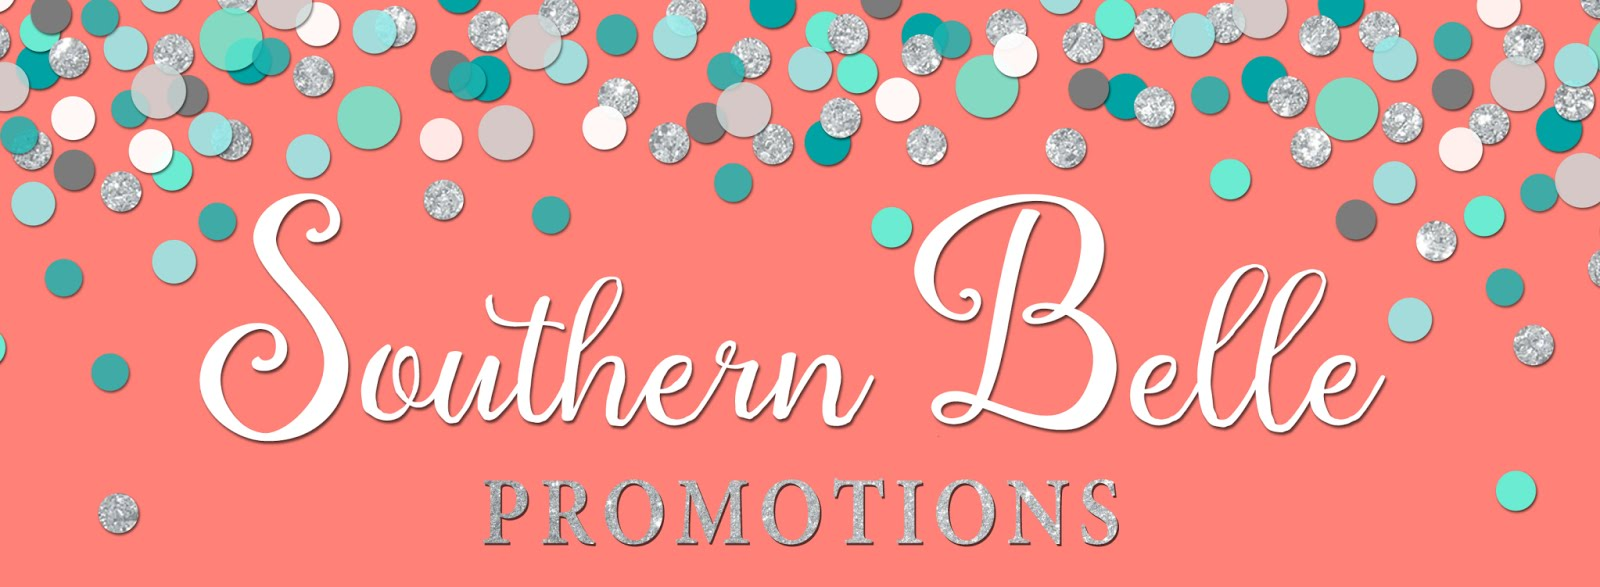 Southern Belle Promotions Partner